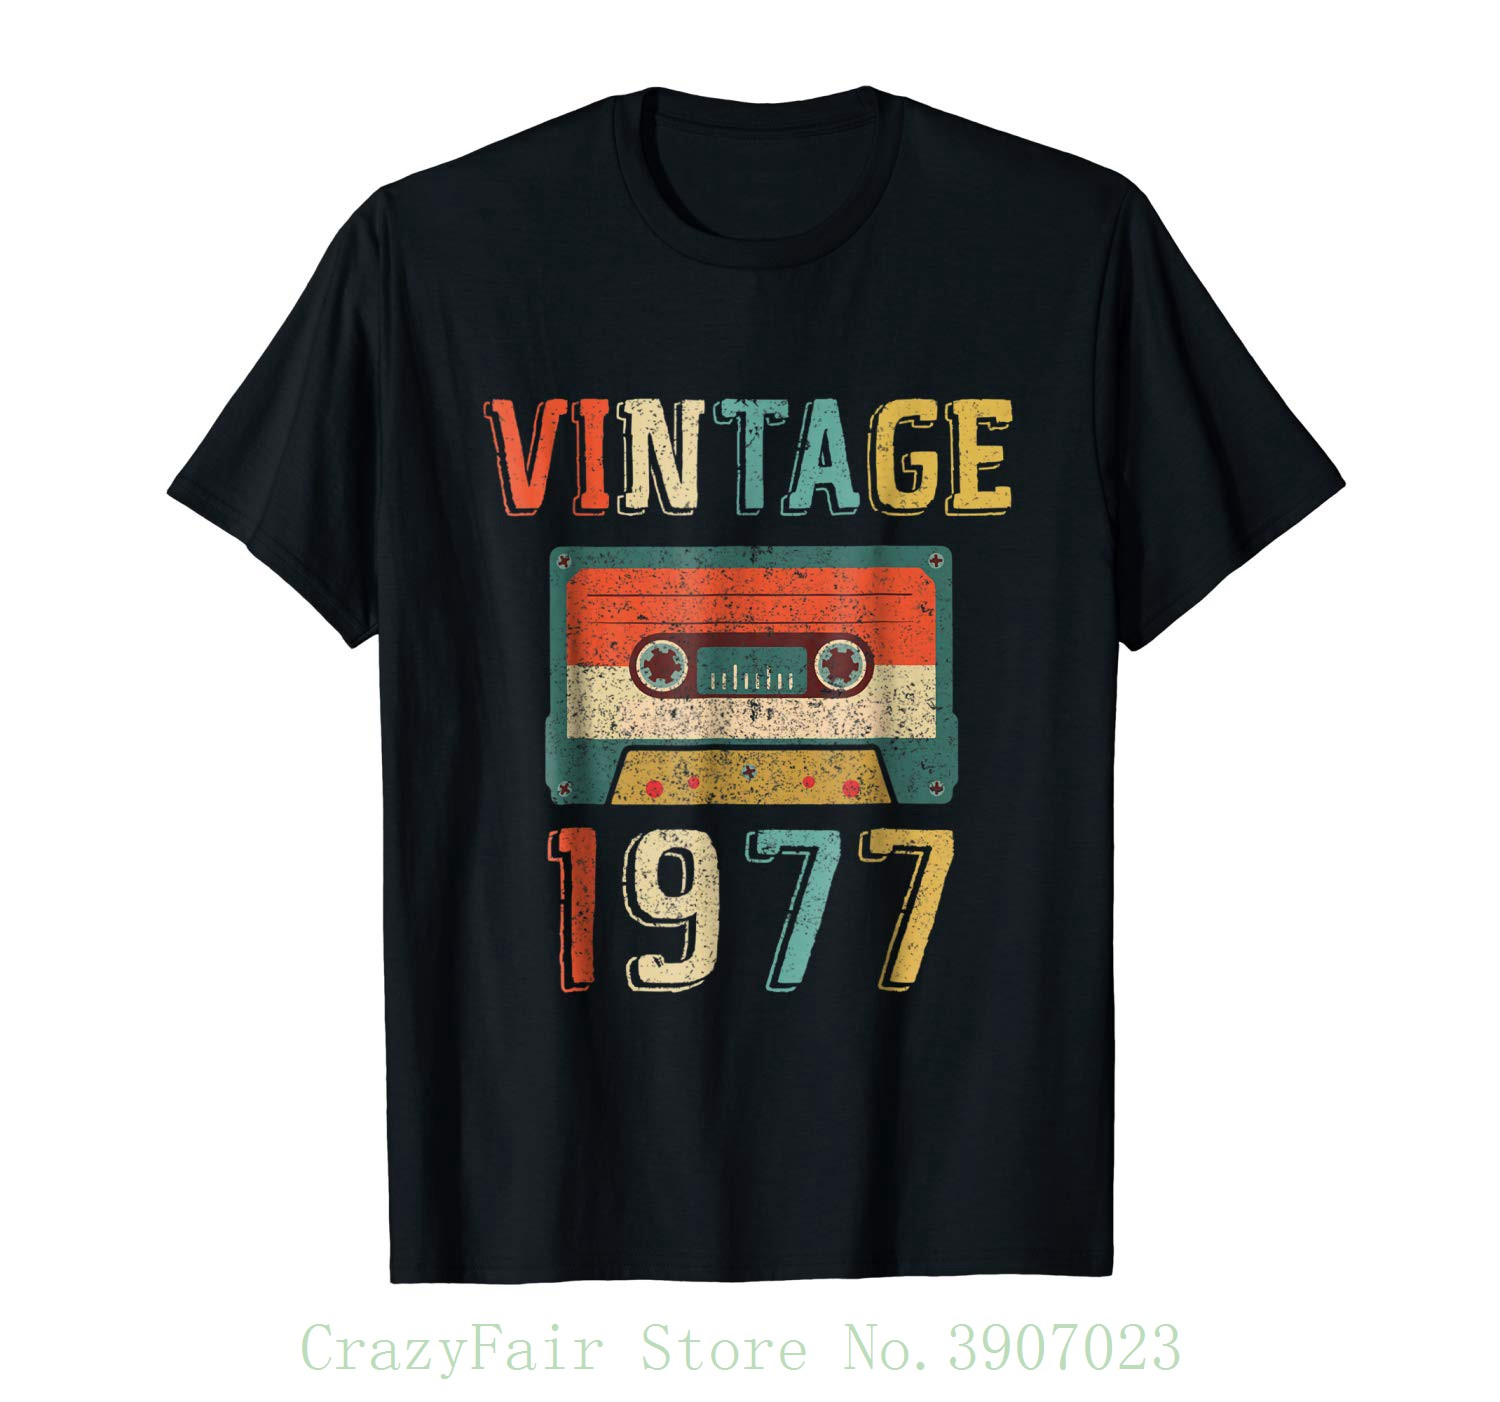 9d721ed9016 Detail Feedback Questions about 41st Birthday Gift Vintage 1977 41 Years  Old Mixtape T shirt Casual Short Sleeve Tshirt Novelty on Aliexpress.com